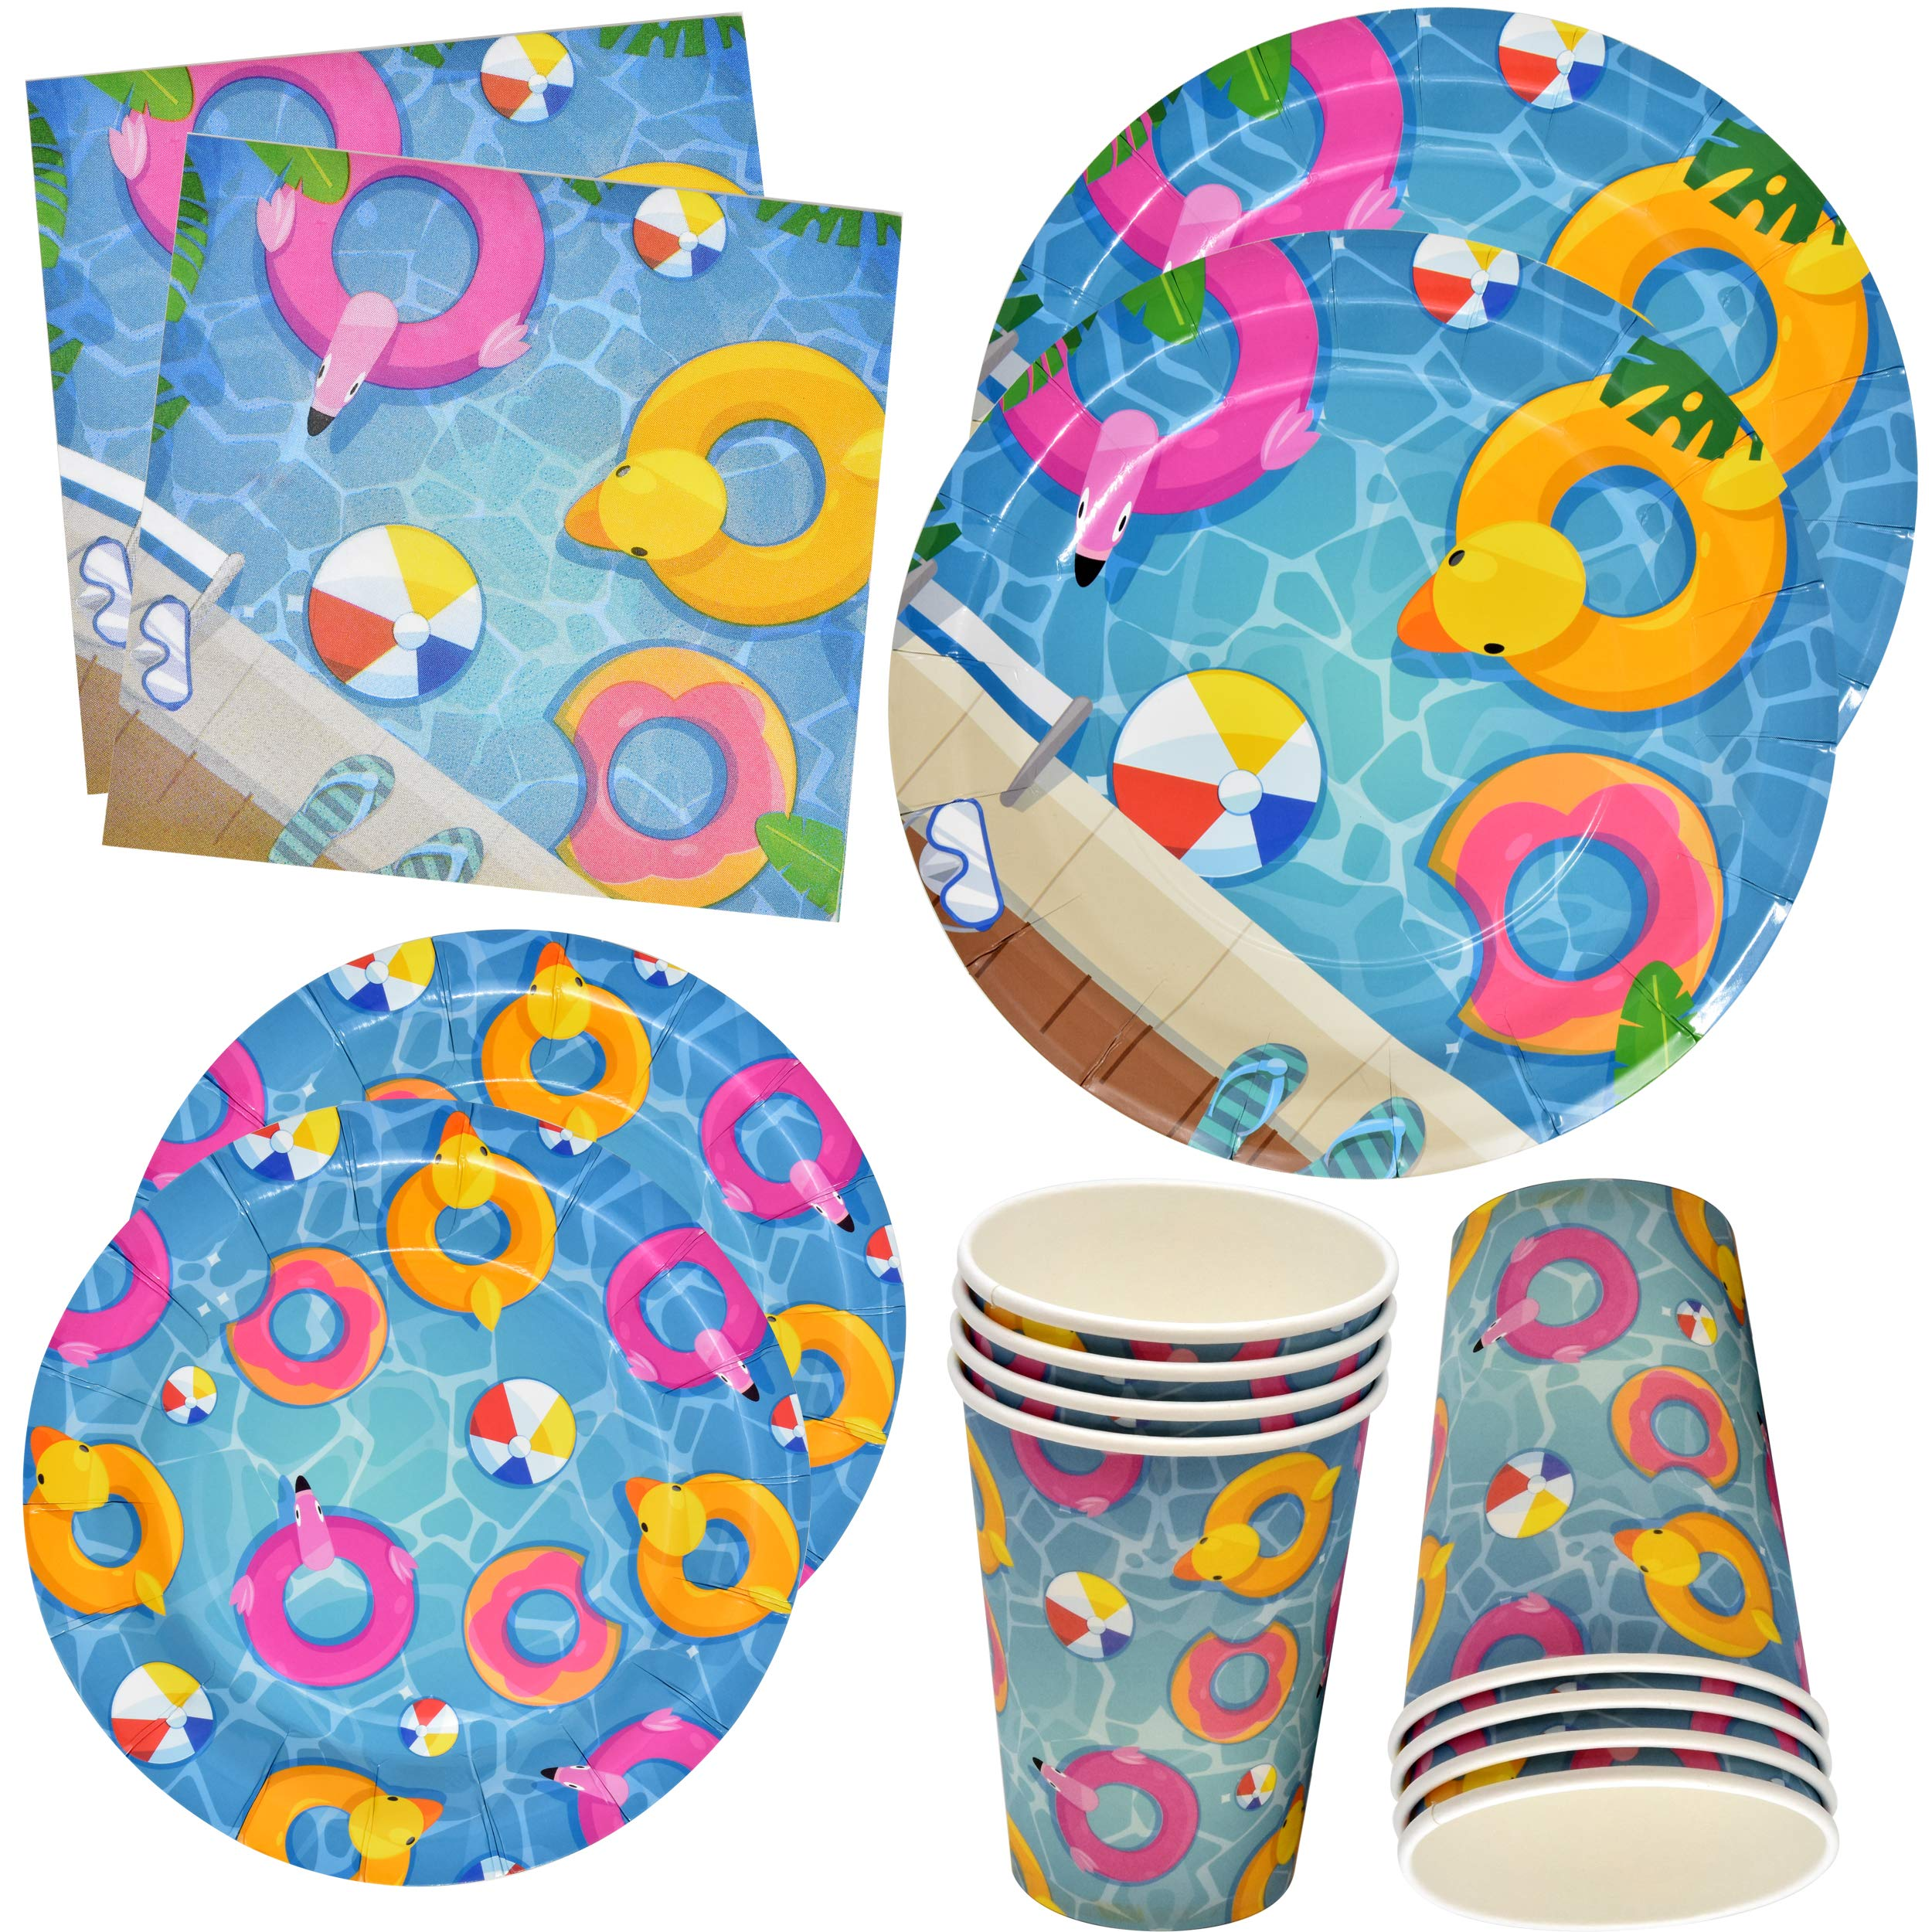 Pool Beach Summer Party Supplies Set Includes 24 9'' Plates 24 7'' Plates 24 9 Oz Cups 50 Lunch Napkins luau Ball Water Tube Picnic Theme Birthday Parties Baby Shower Disposable Tableware Gift Boutique